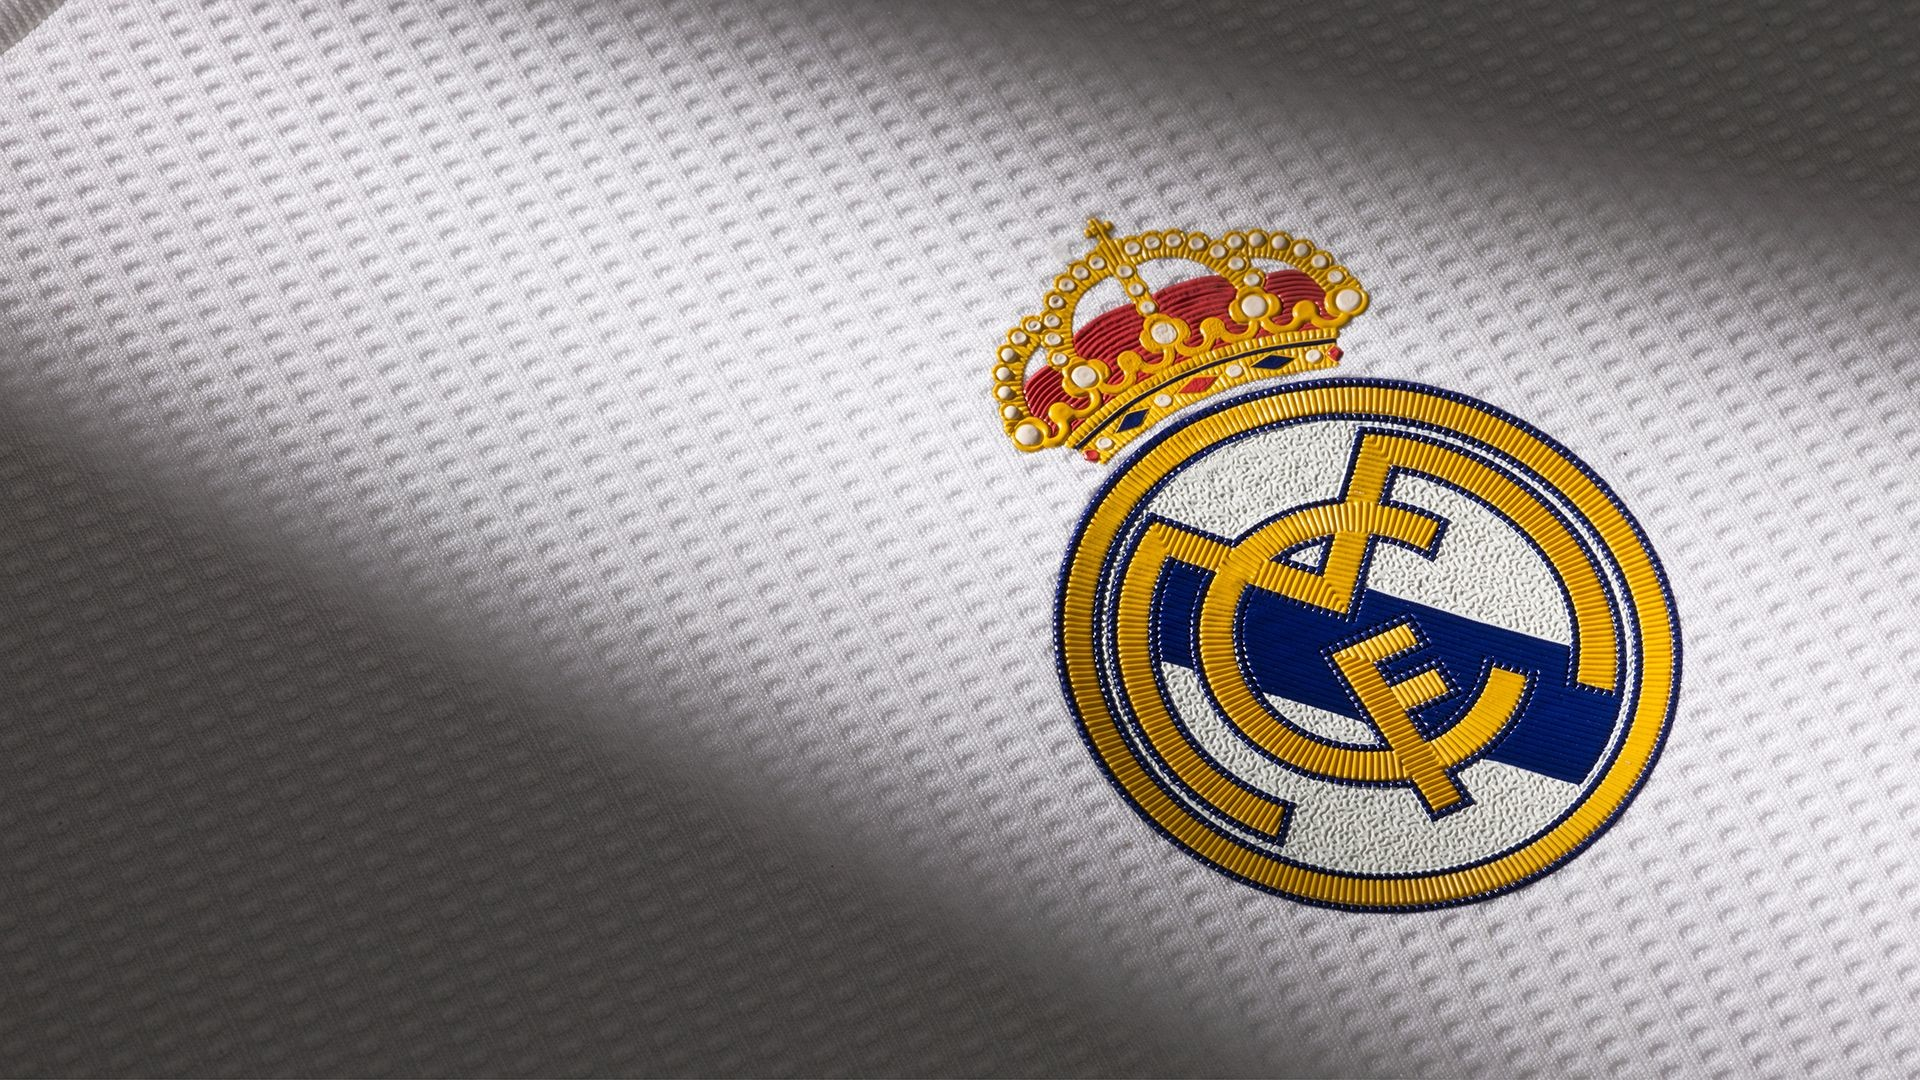 Res: 1920x1080, Real Madrid Poster - Best Wallpaper HD